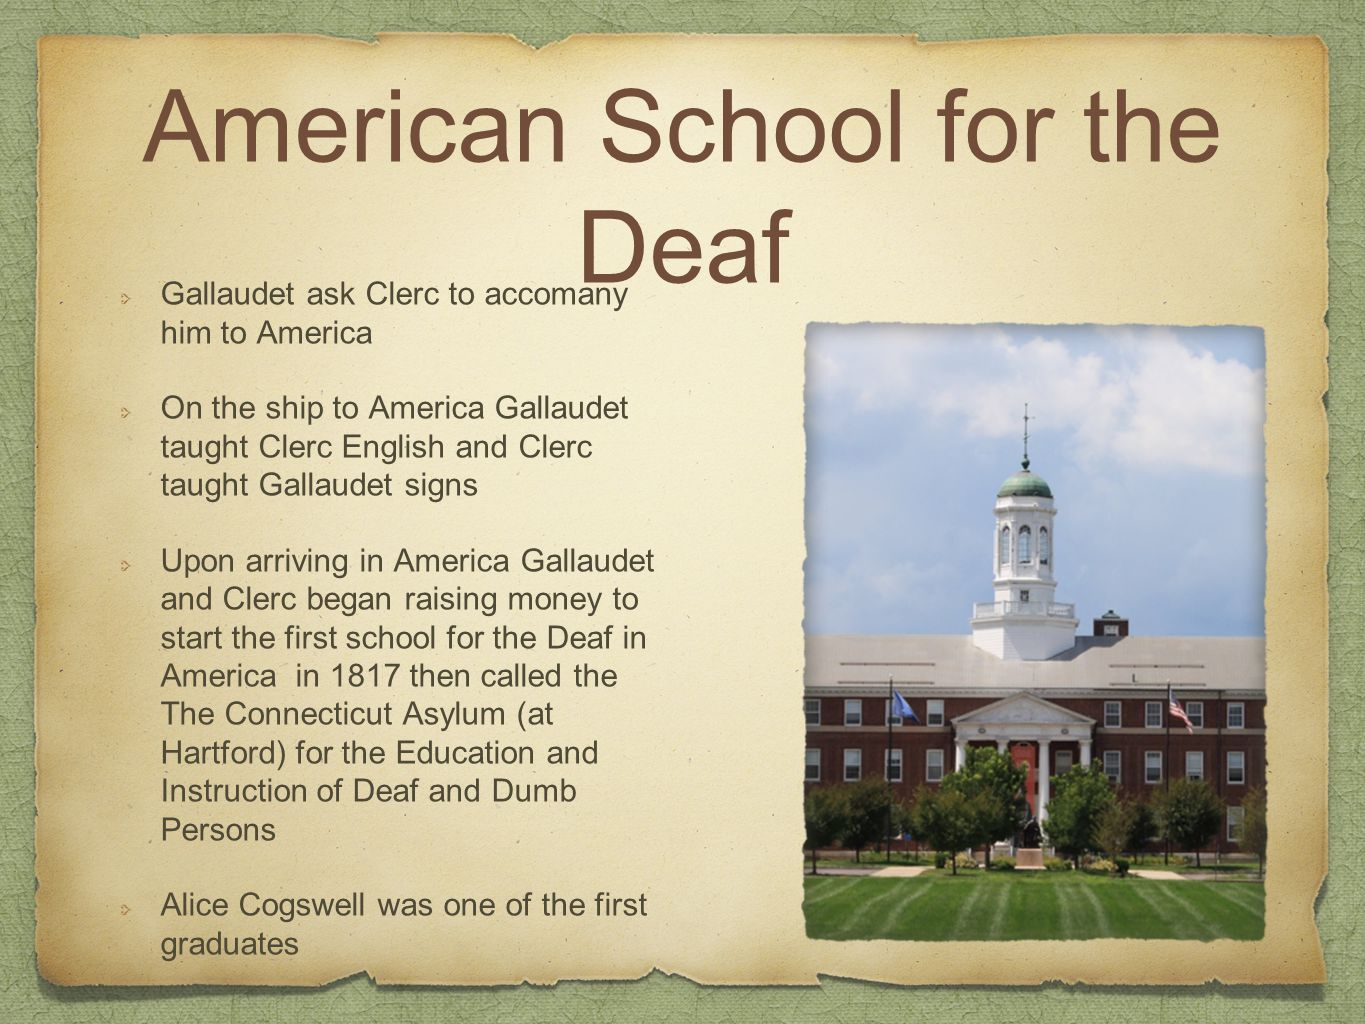 A brief history of the early days of Deaf education in the United States, 1800-1880